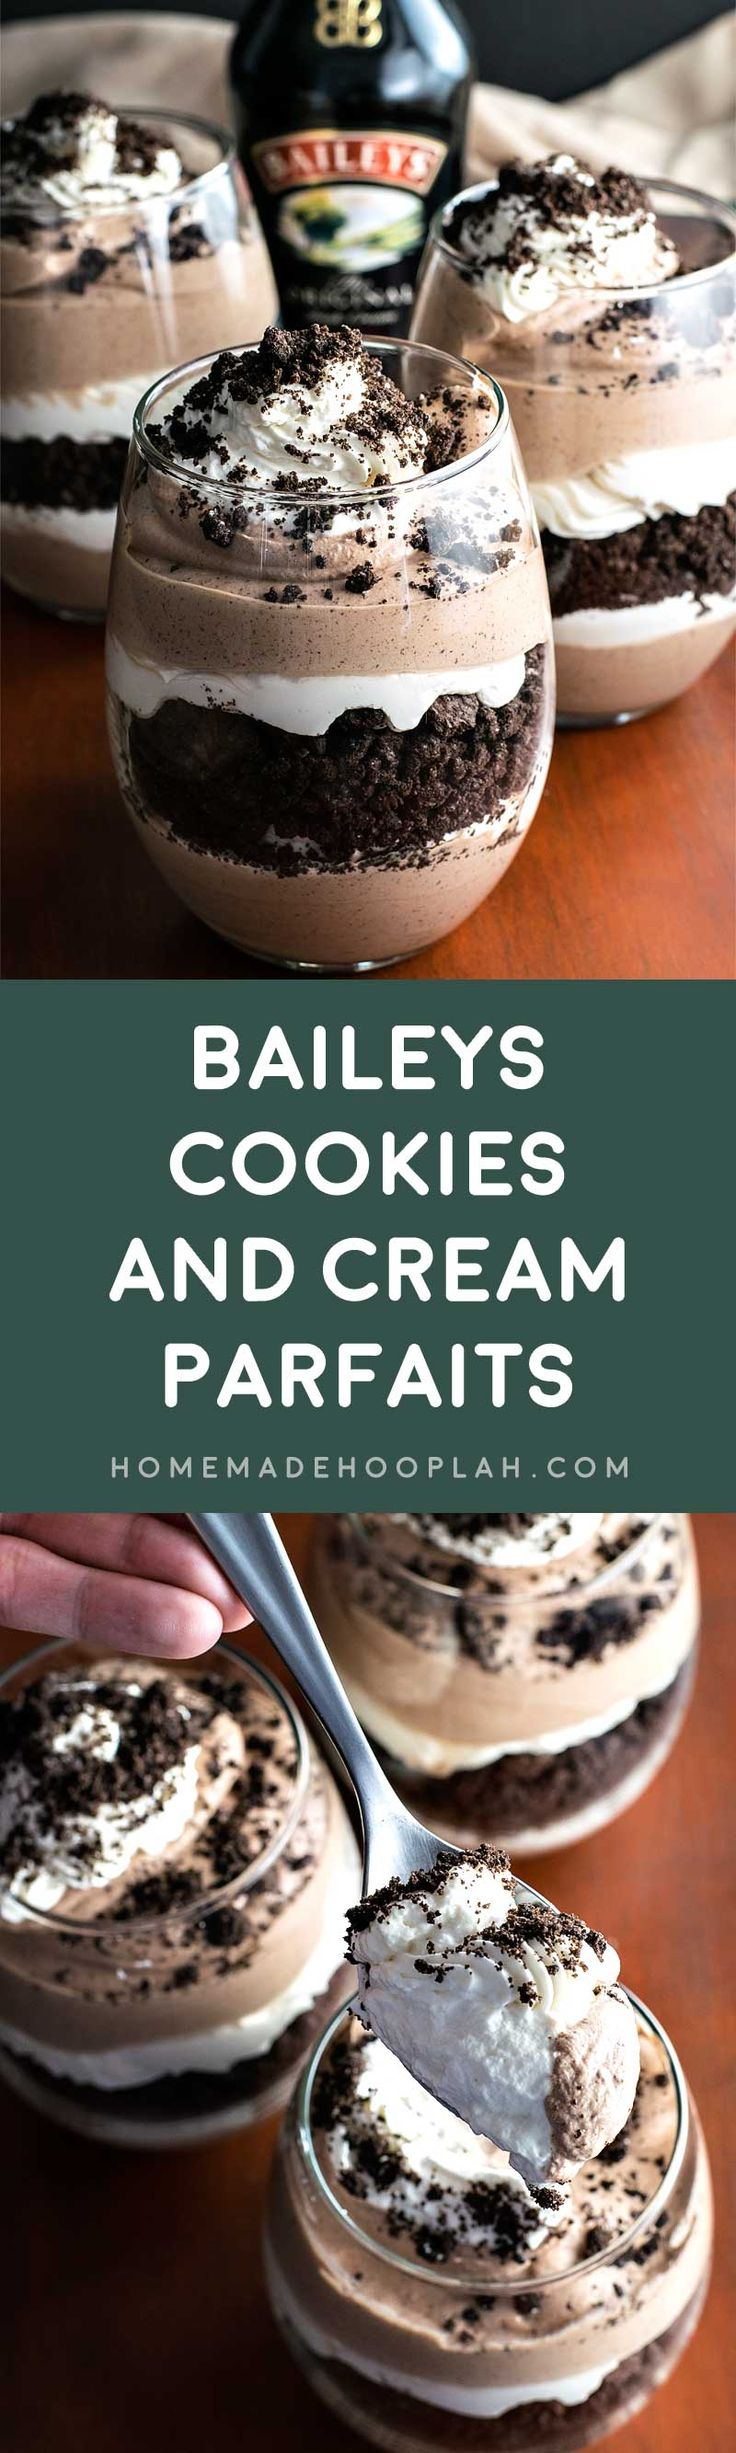 Baileys Cookies and Cream Parfaits! Layered chocolate and Baileys cream paired with crumbled Oreo cookies. These Baileys Cookies and Cream Parfaits are the perfect weekend retreat!   HomemadeHooplah.com